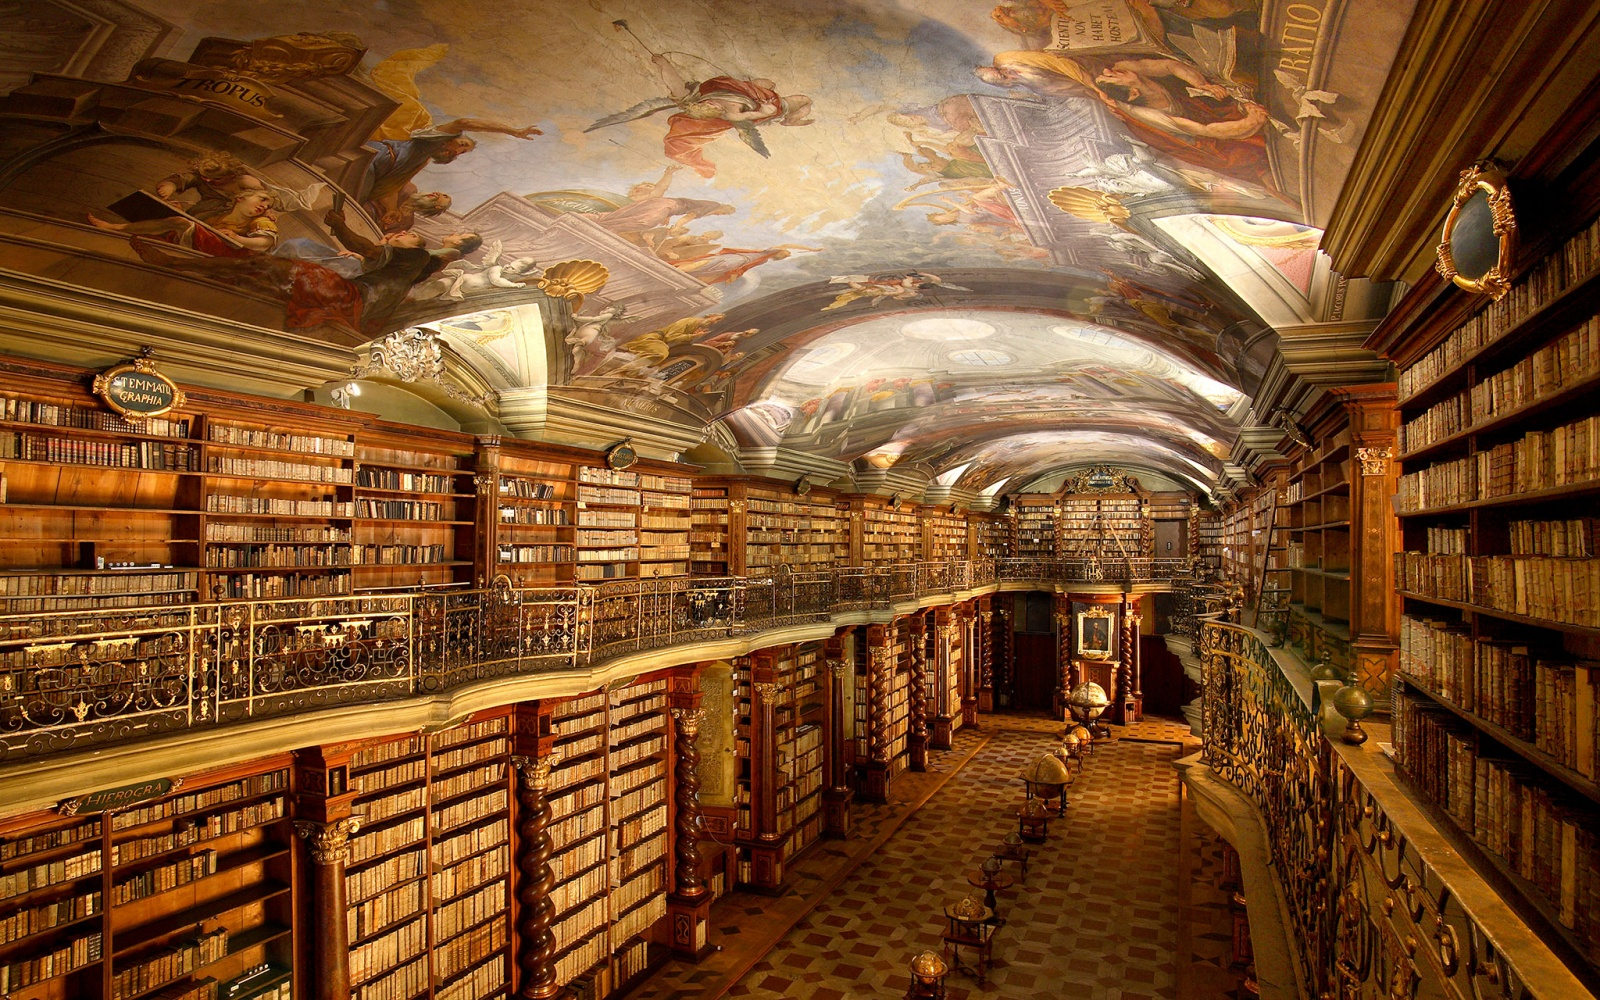 Stupendous 20 Libraries So Beautiful Theyll Bring Out The Bookworm In Largest Home Design Picture Inspirations Pitcheantrous